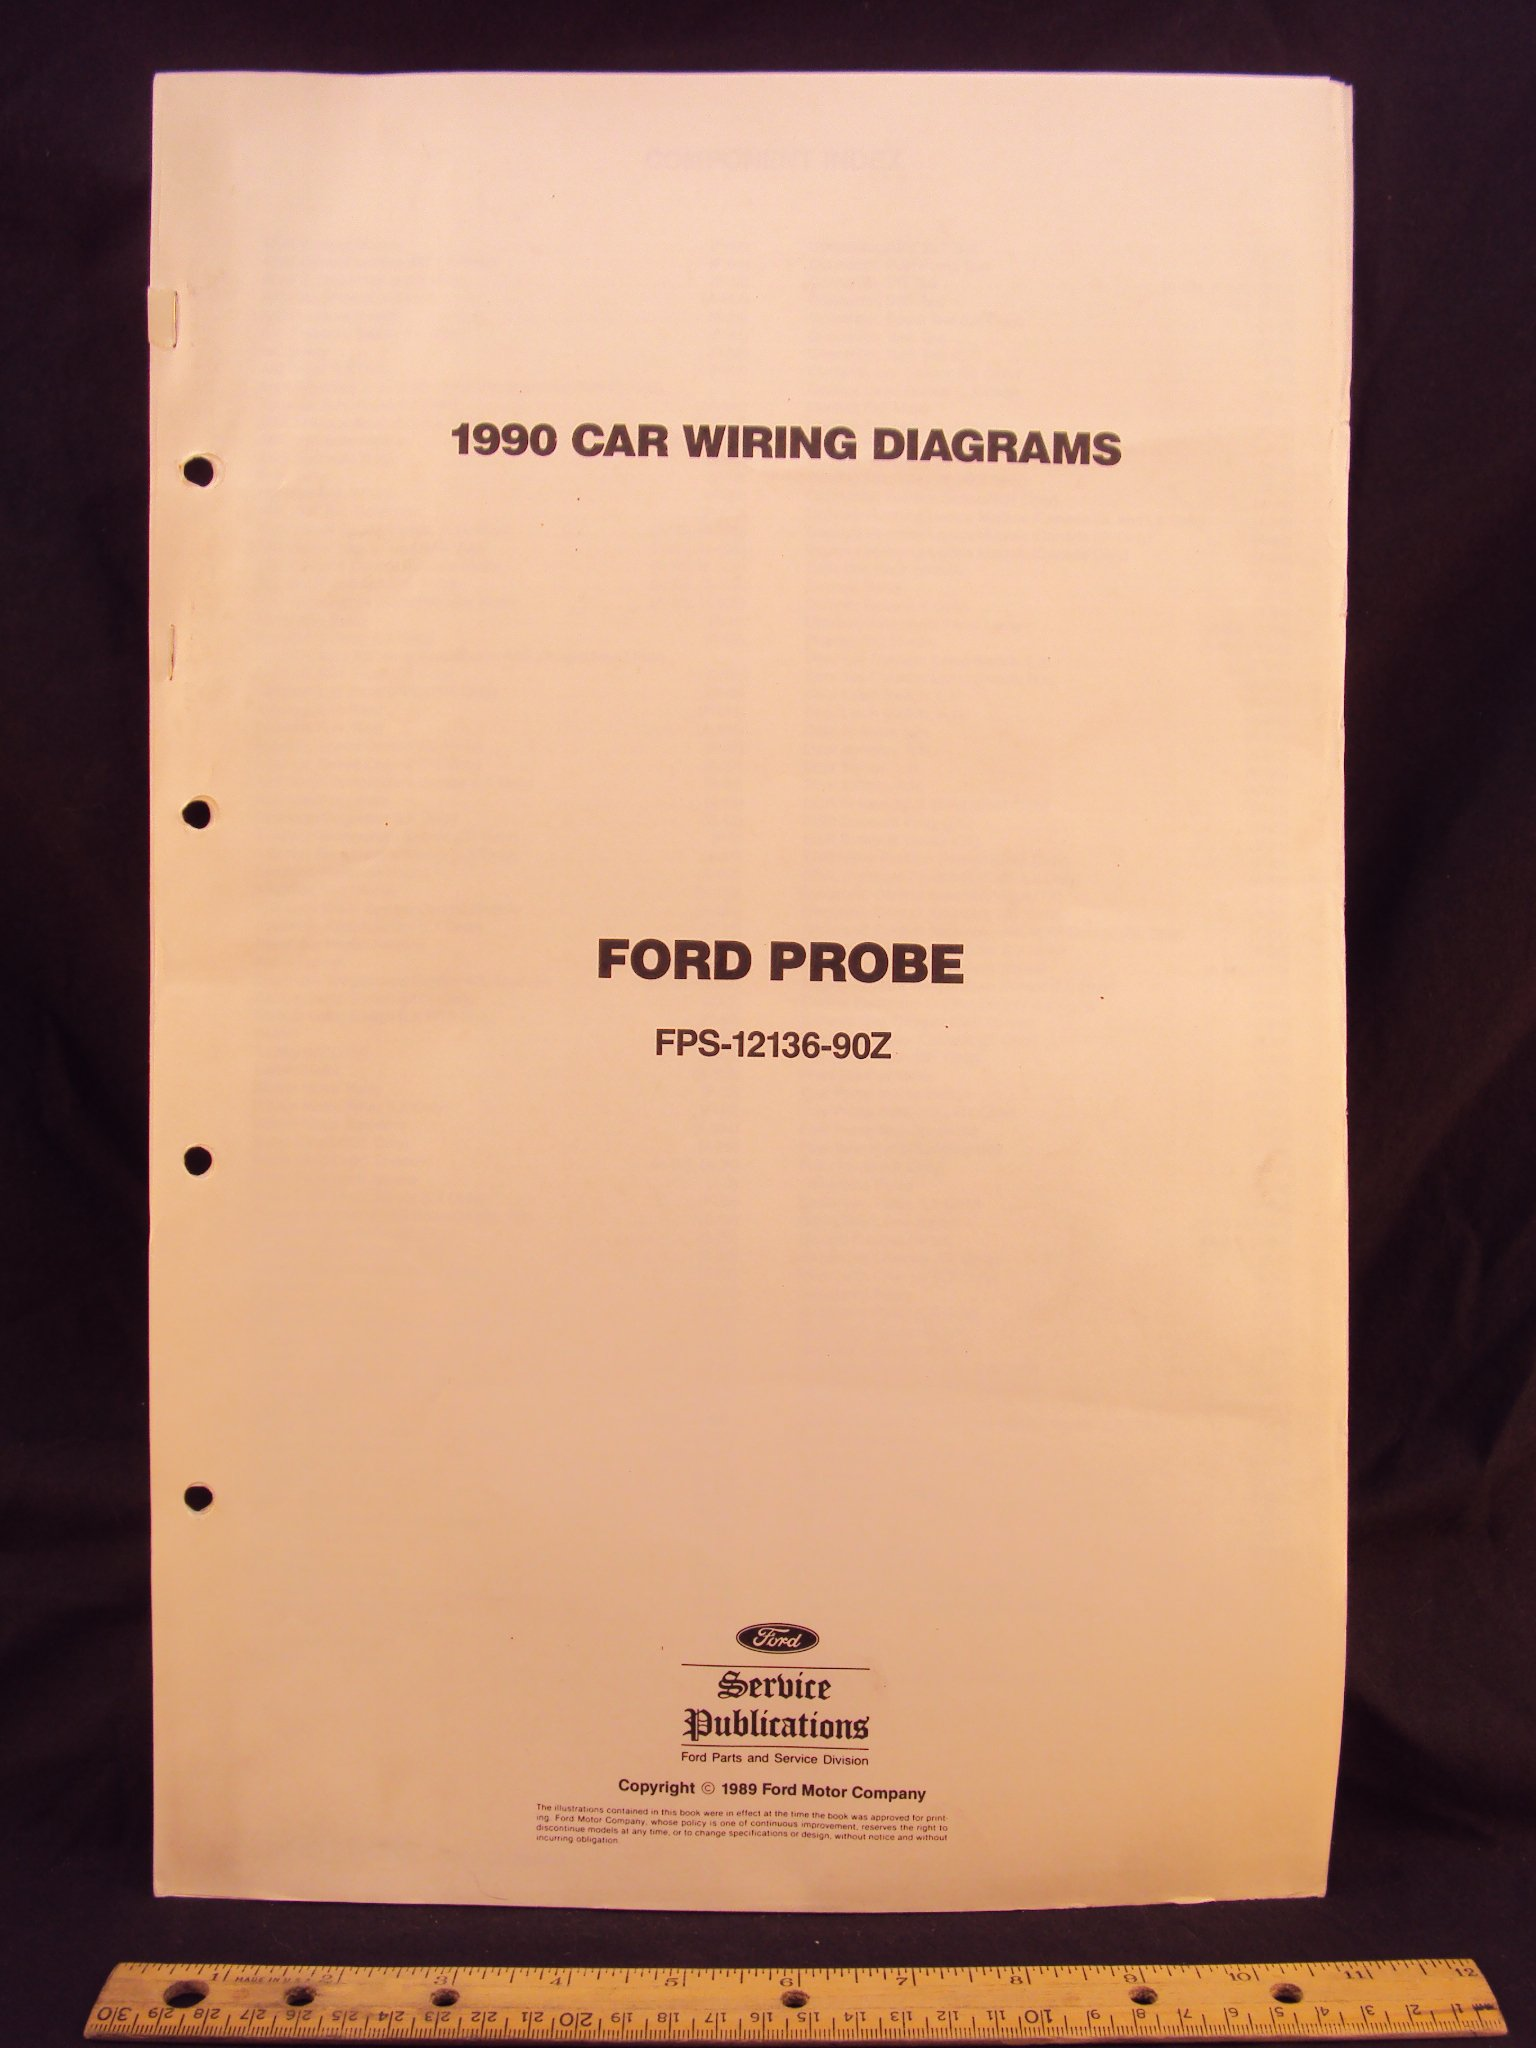 1990 FORD Probe Electrical Wiring Diagrams / Schematics ...  Ford Probe Wiring Diagram on 89 ford transfer case, 89 ford clutch diagrams, 89 ford electrical schematics, 89 ford f350 powerstroke, 89 ford engine,